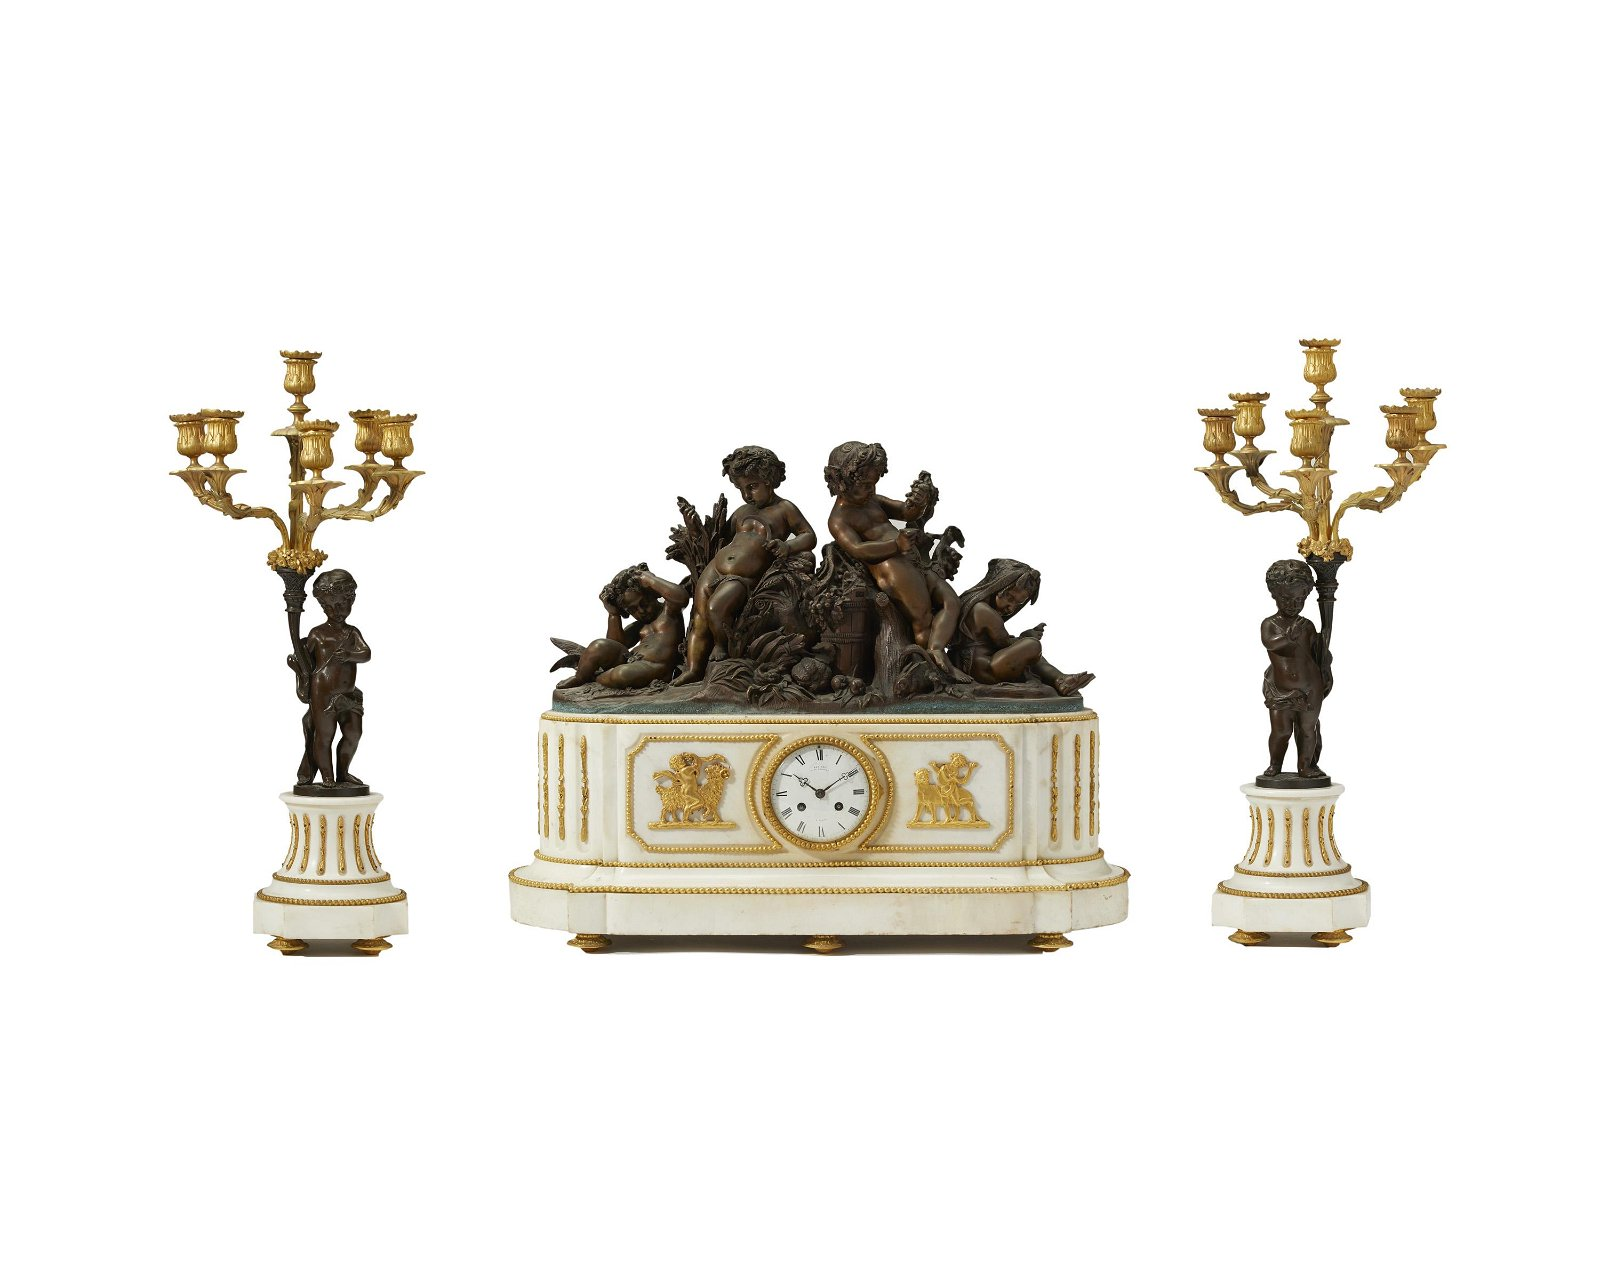 A Deniere France white marble and gilt-bronze clock set